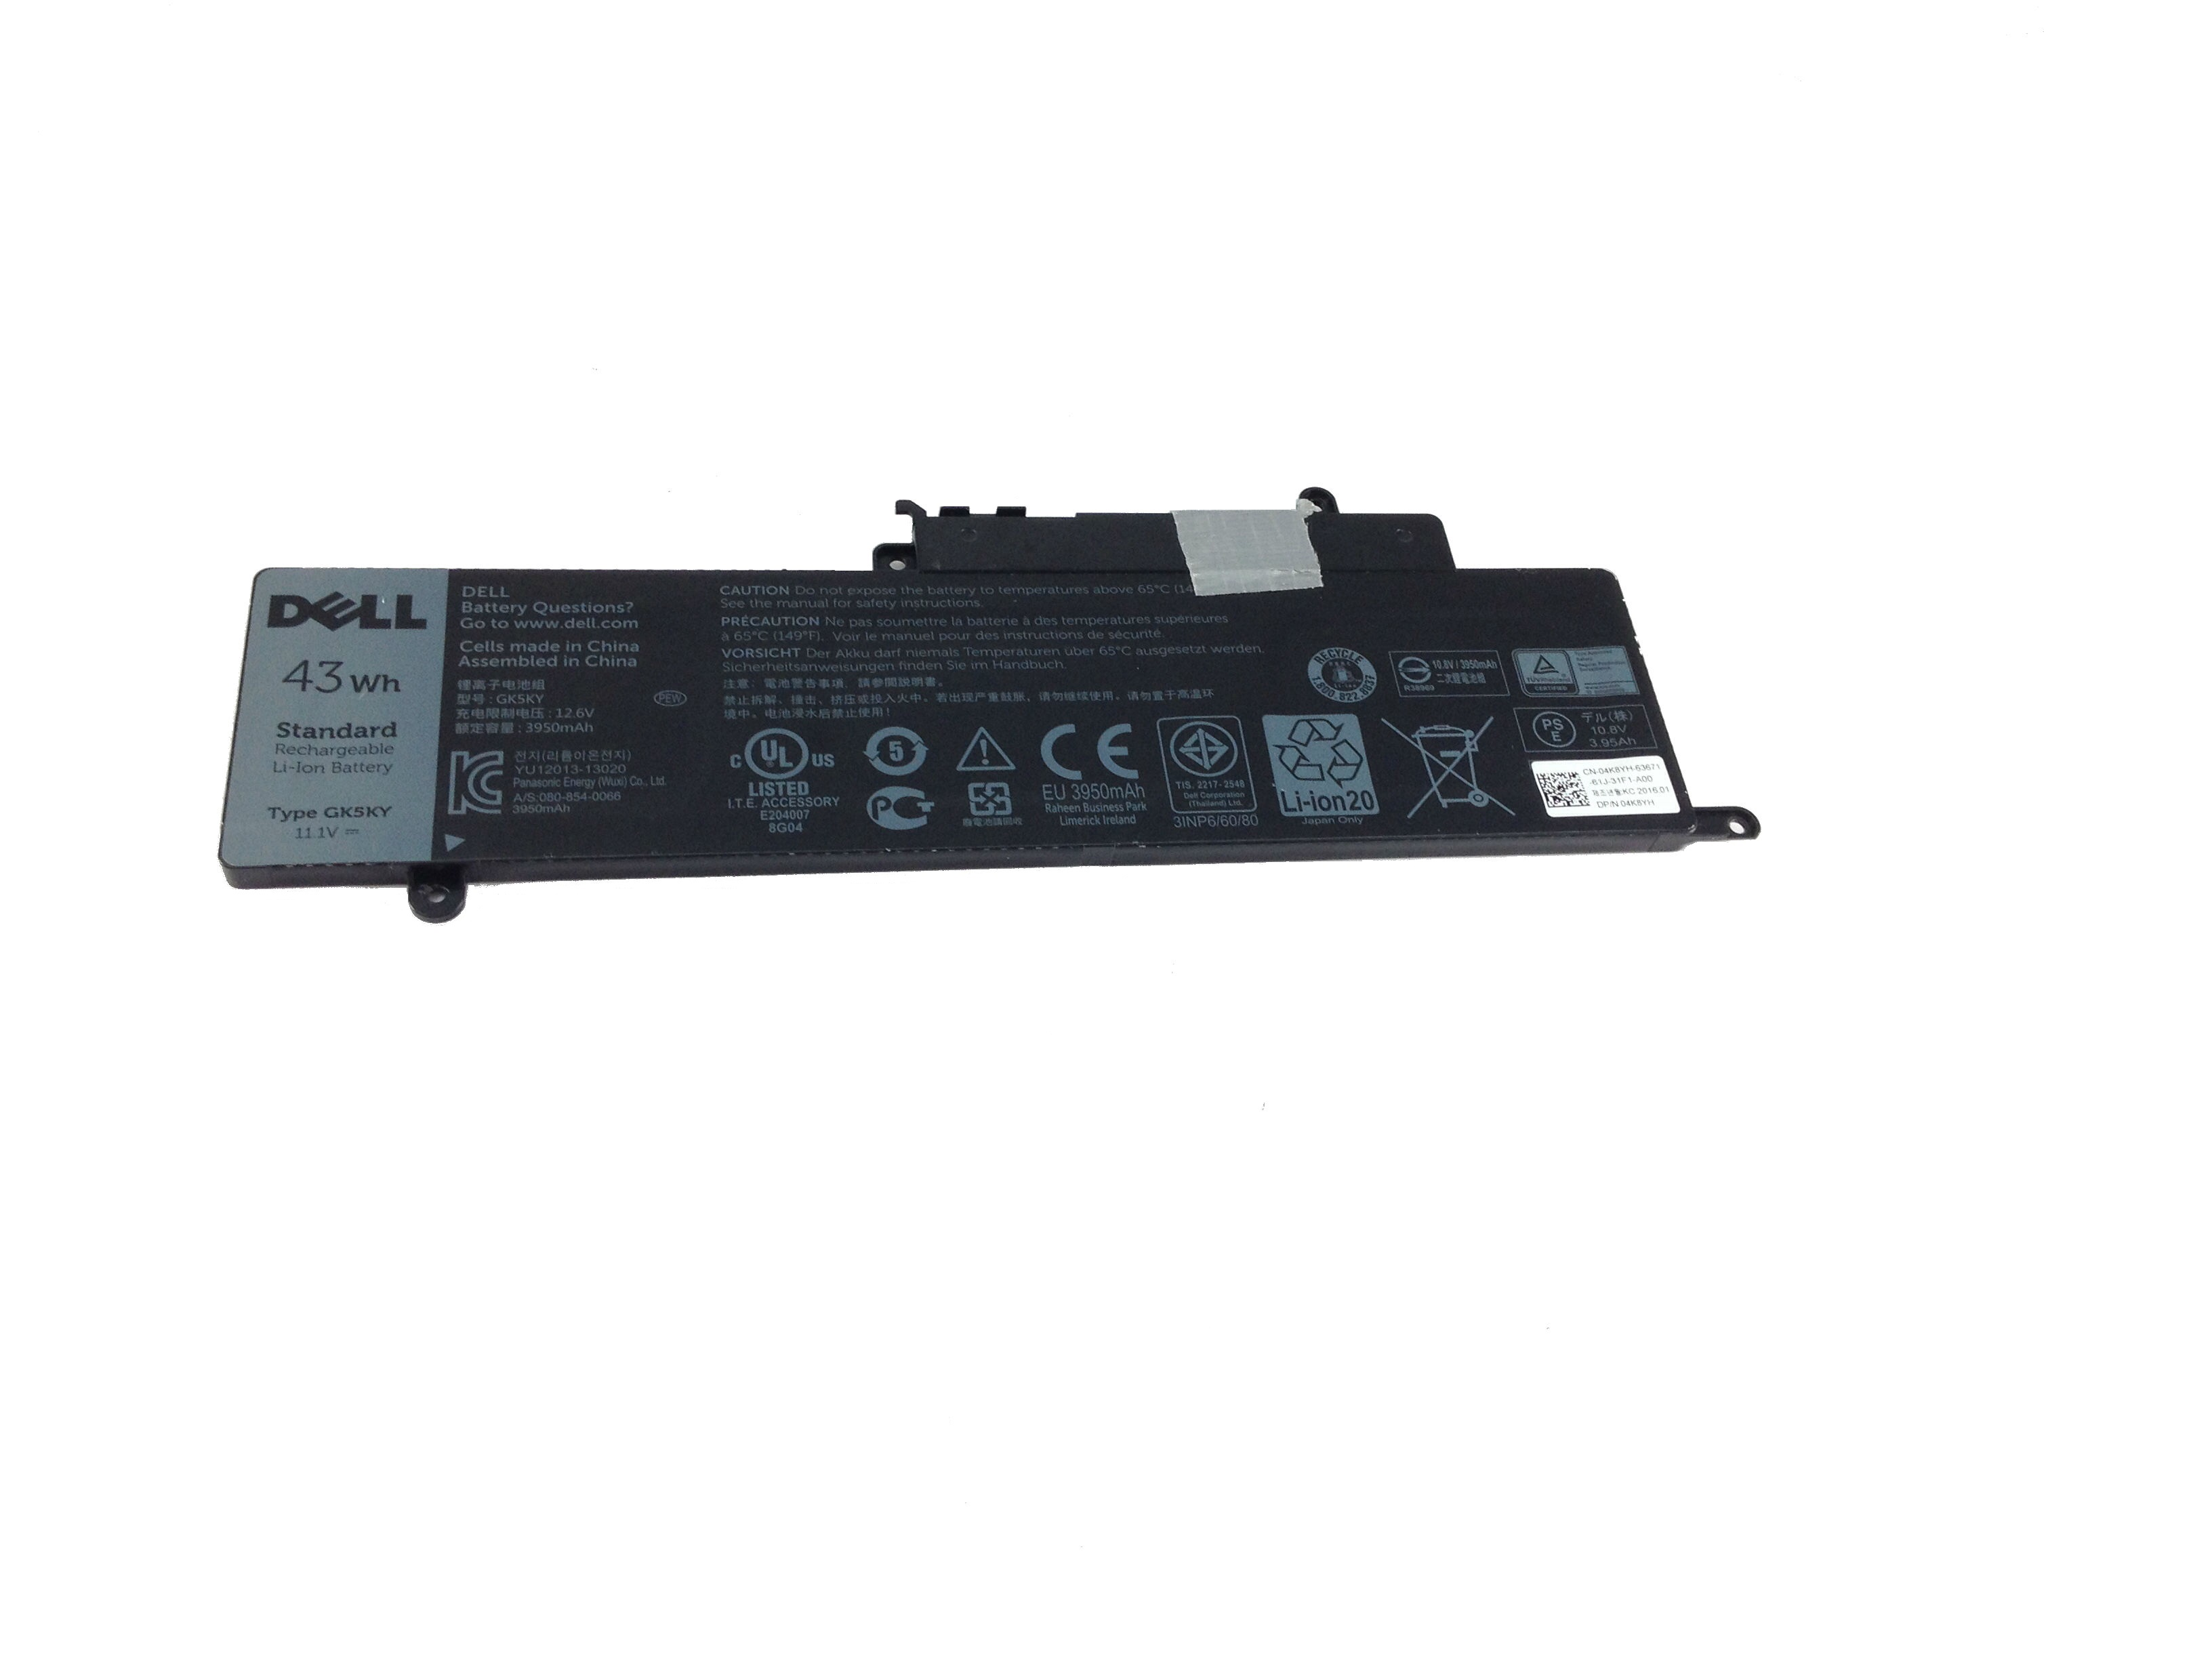 Dell Inspiron 9400 Memory Motherboard Layout Xps M1210